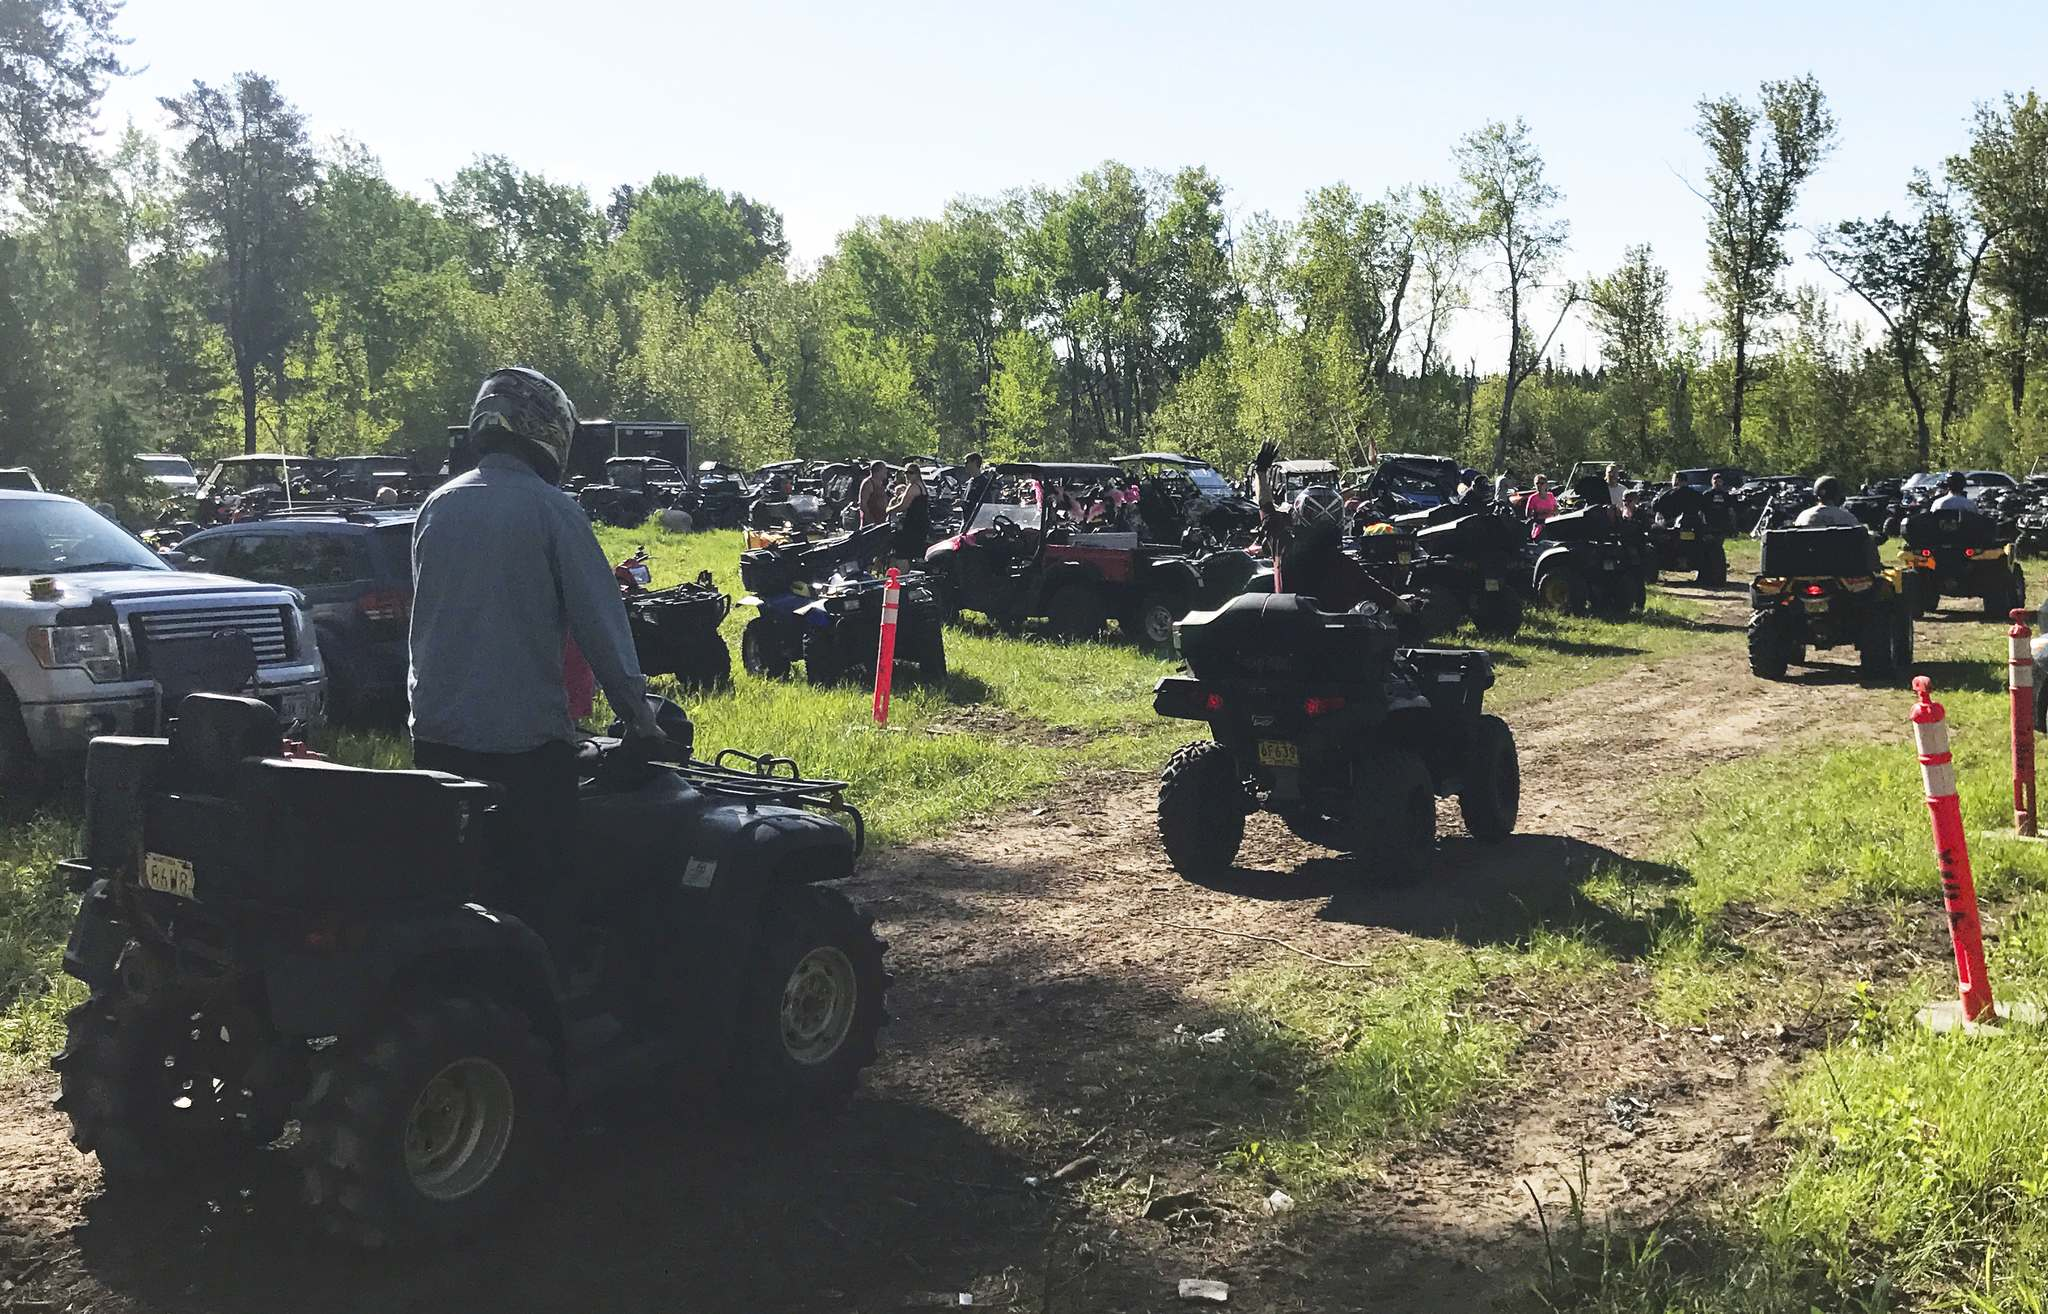 photos by willy williamson / winnipeg free pressMore than 800 riders participated in the second annual Ride for Mom, which took place on the Eastman ATV Association's marked trail in the Sandilands Provincial Forest and raised almost $13,000 for Cancer Care Manitoba.